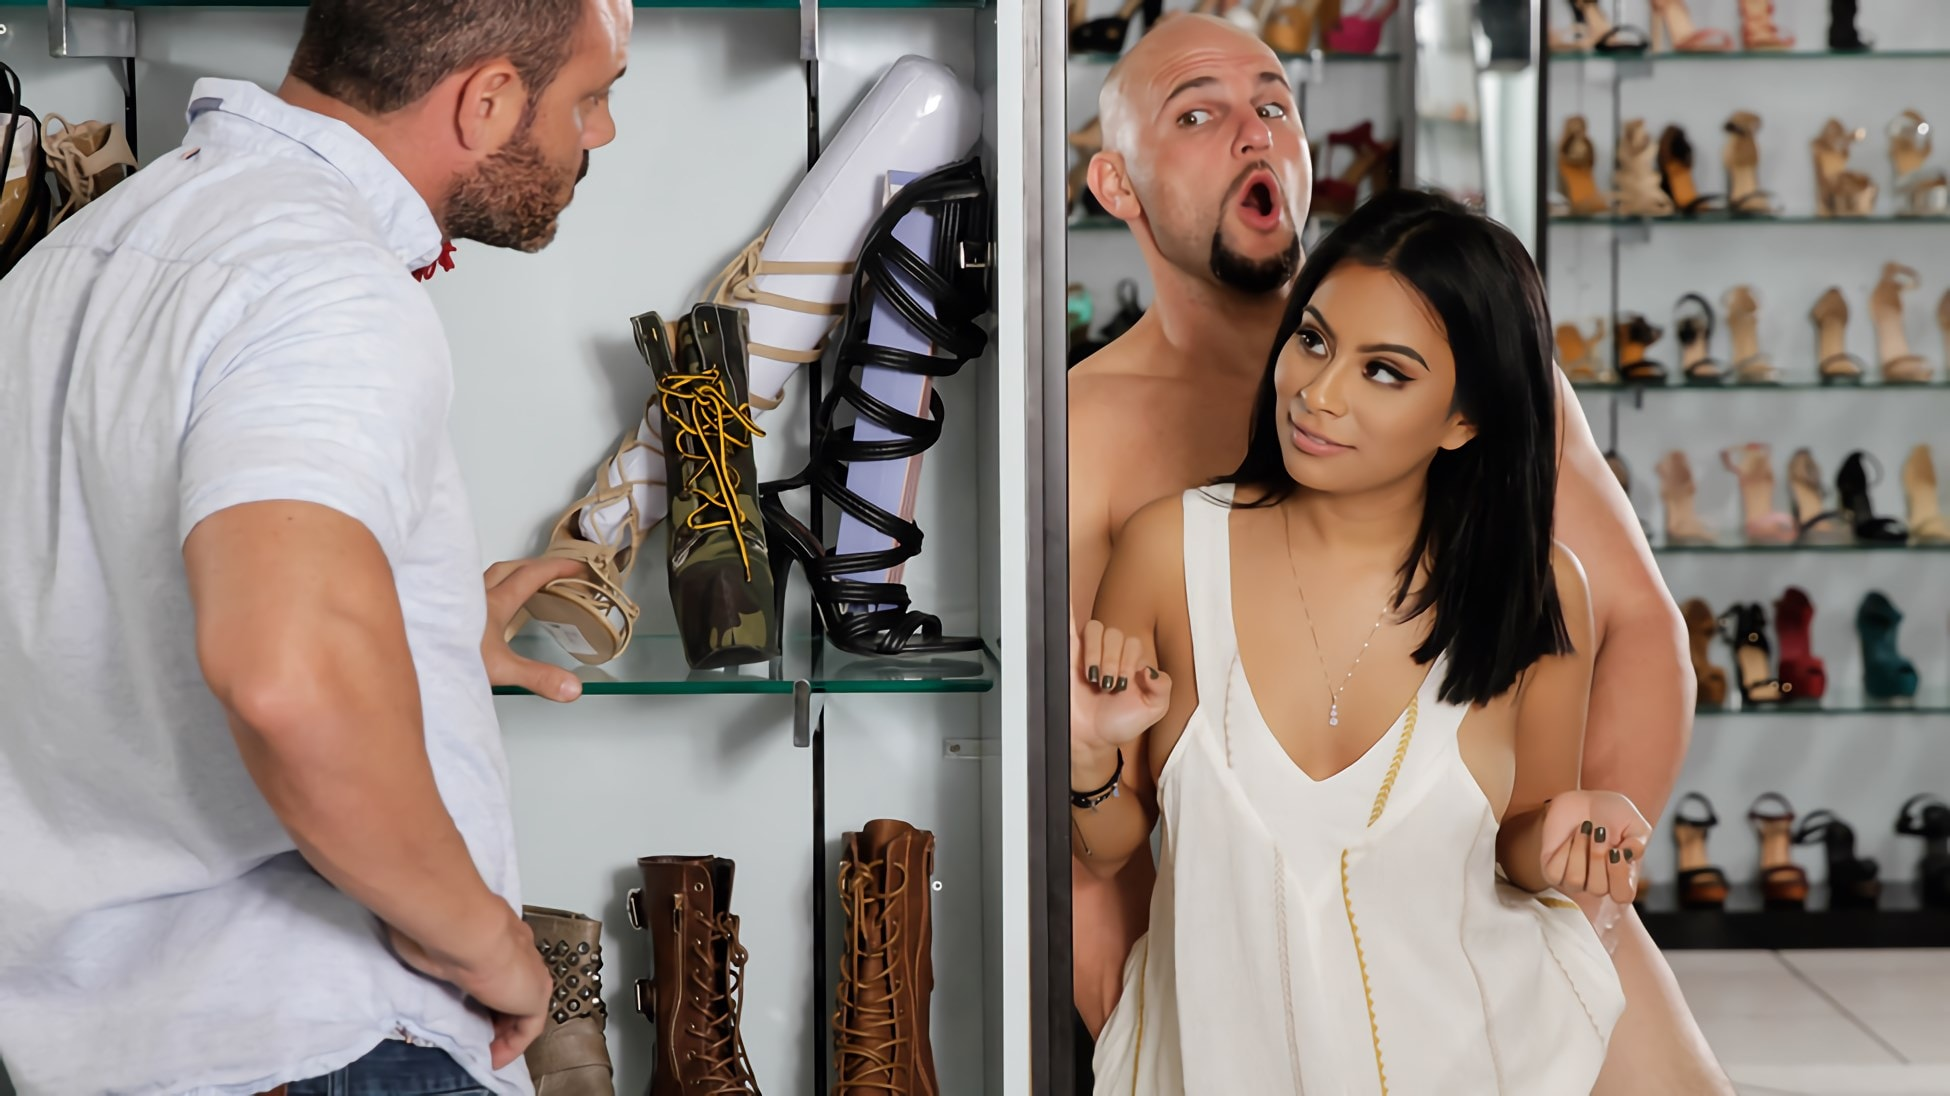 Brazzers 'If The Shoe Fits' starring Monica Asis (photo 6)